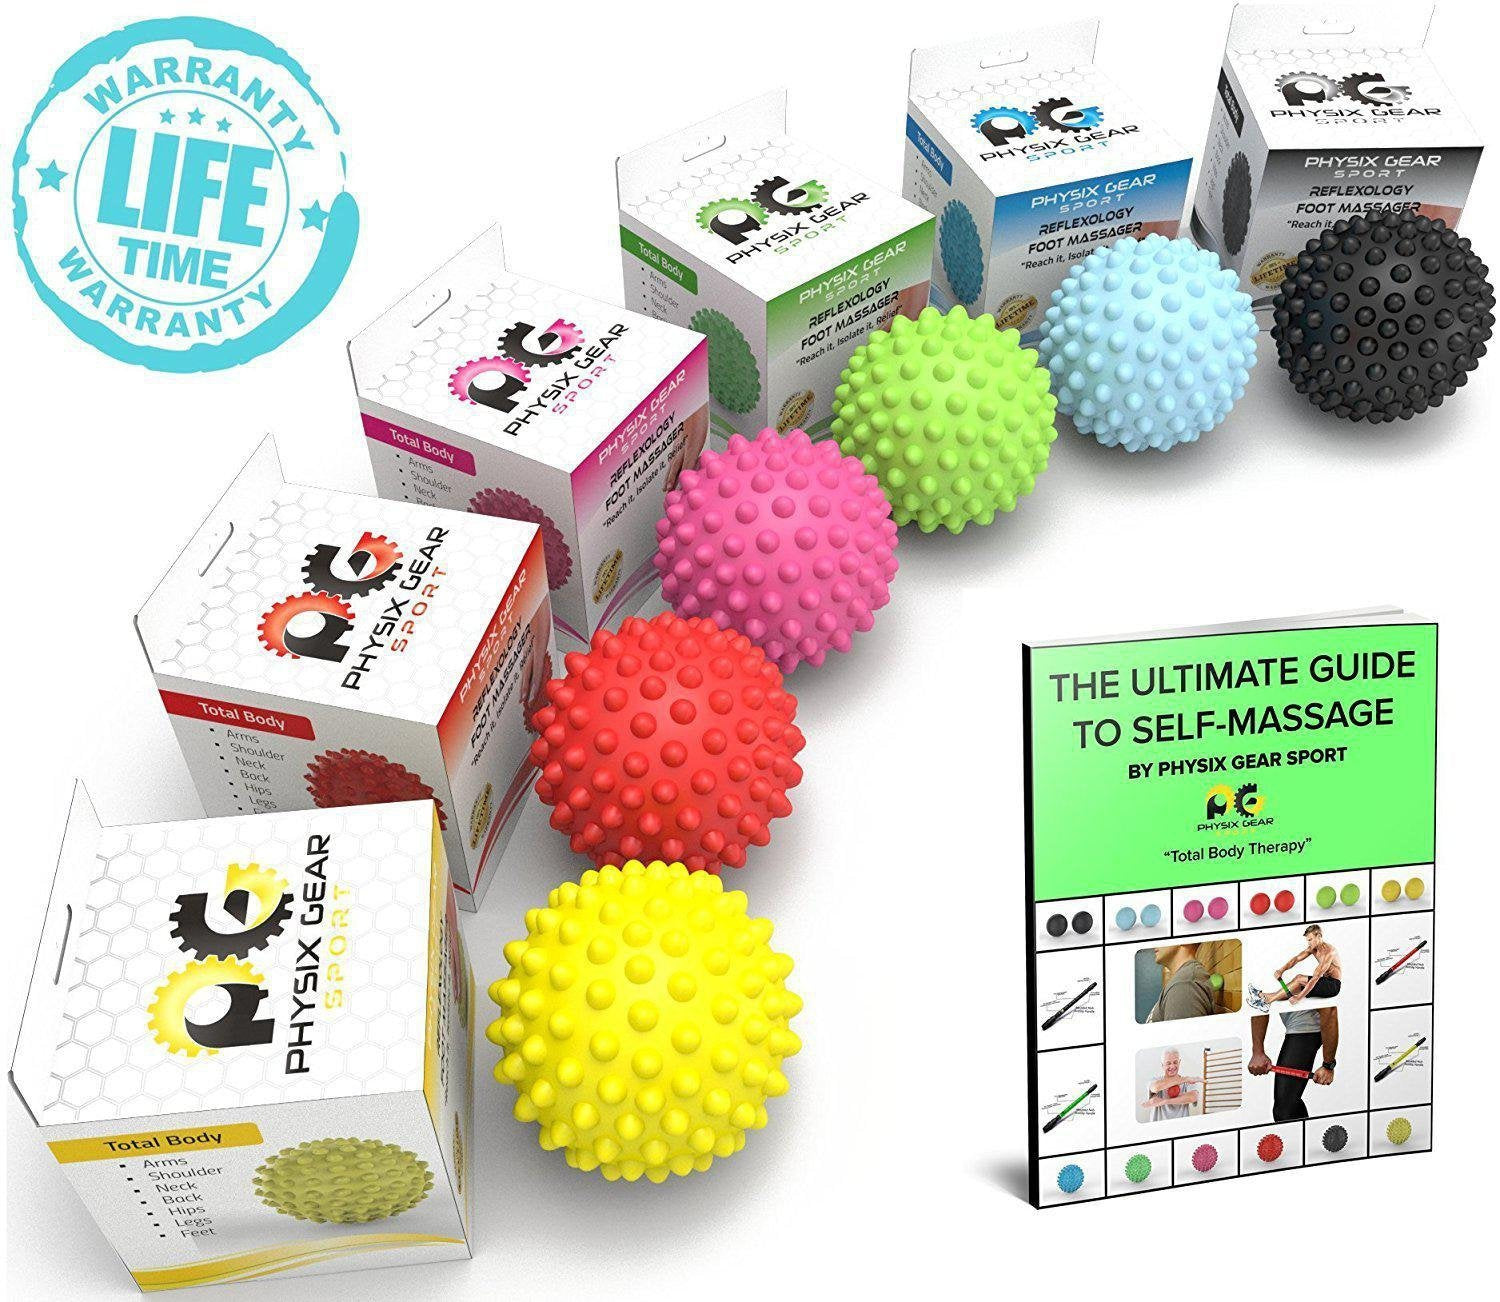 Go for cost-effective massage therapy with the trigger point massage balls-Physix Gear Sport